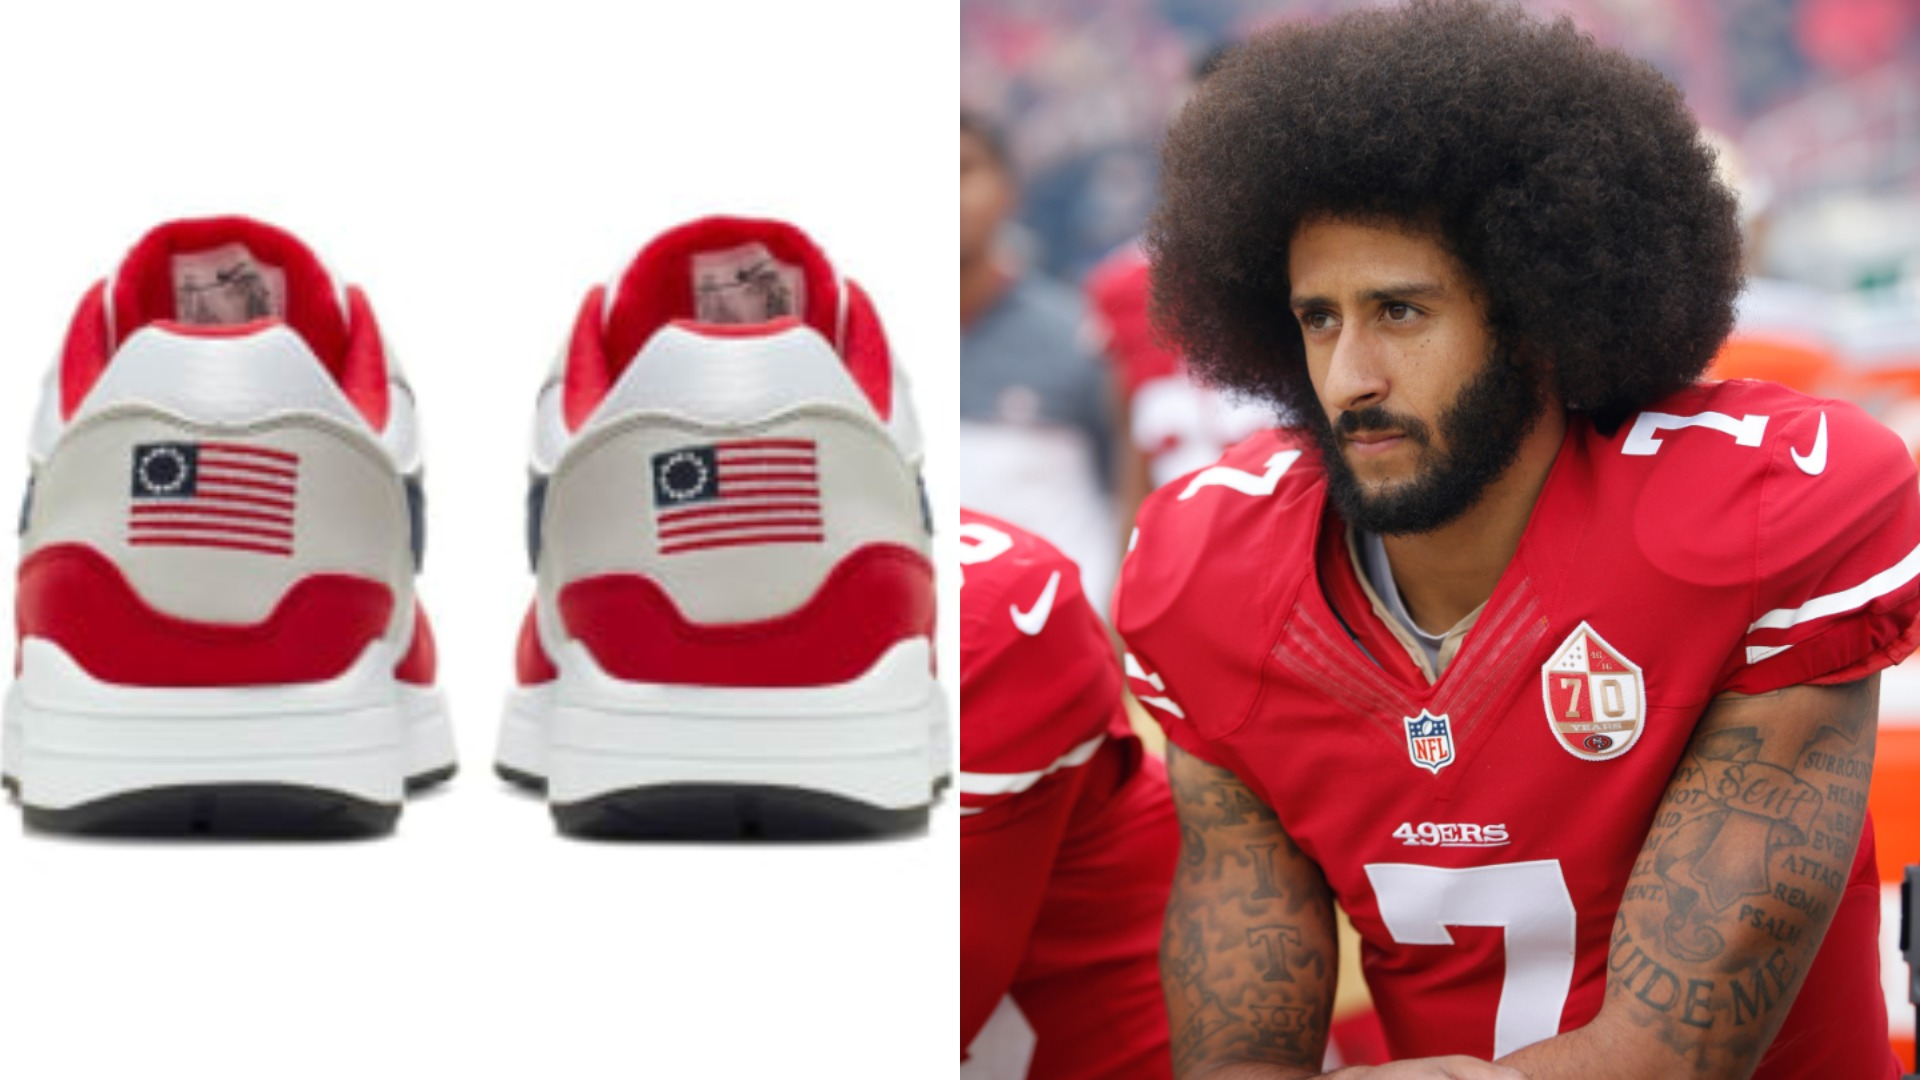 Betsy Ross Flag Shouldn't Be on Sneakers